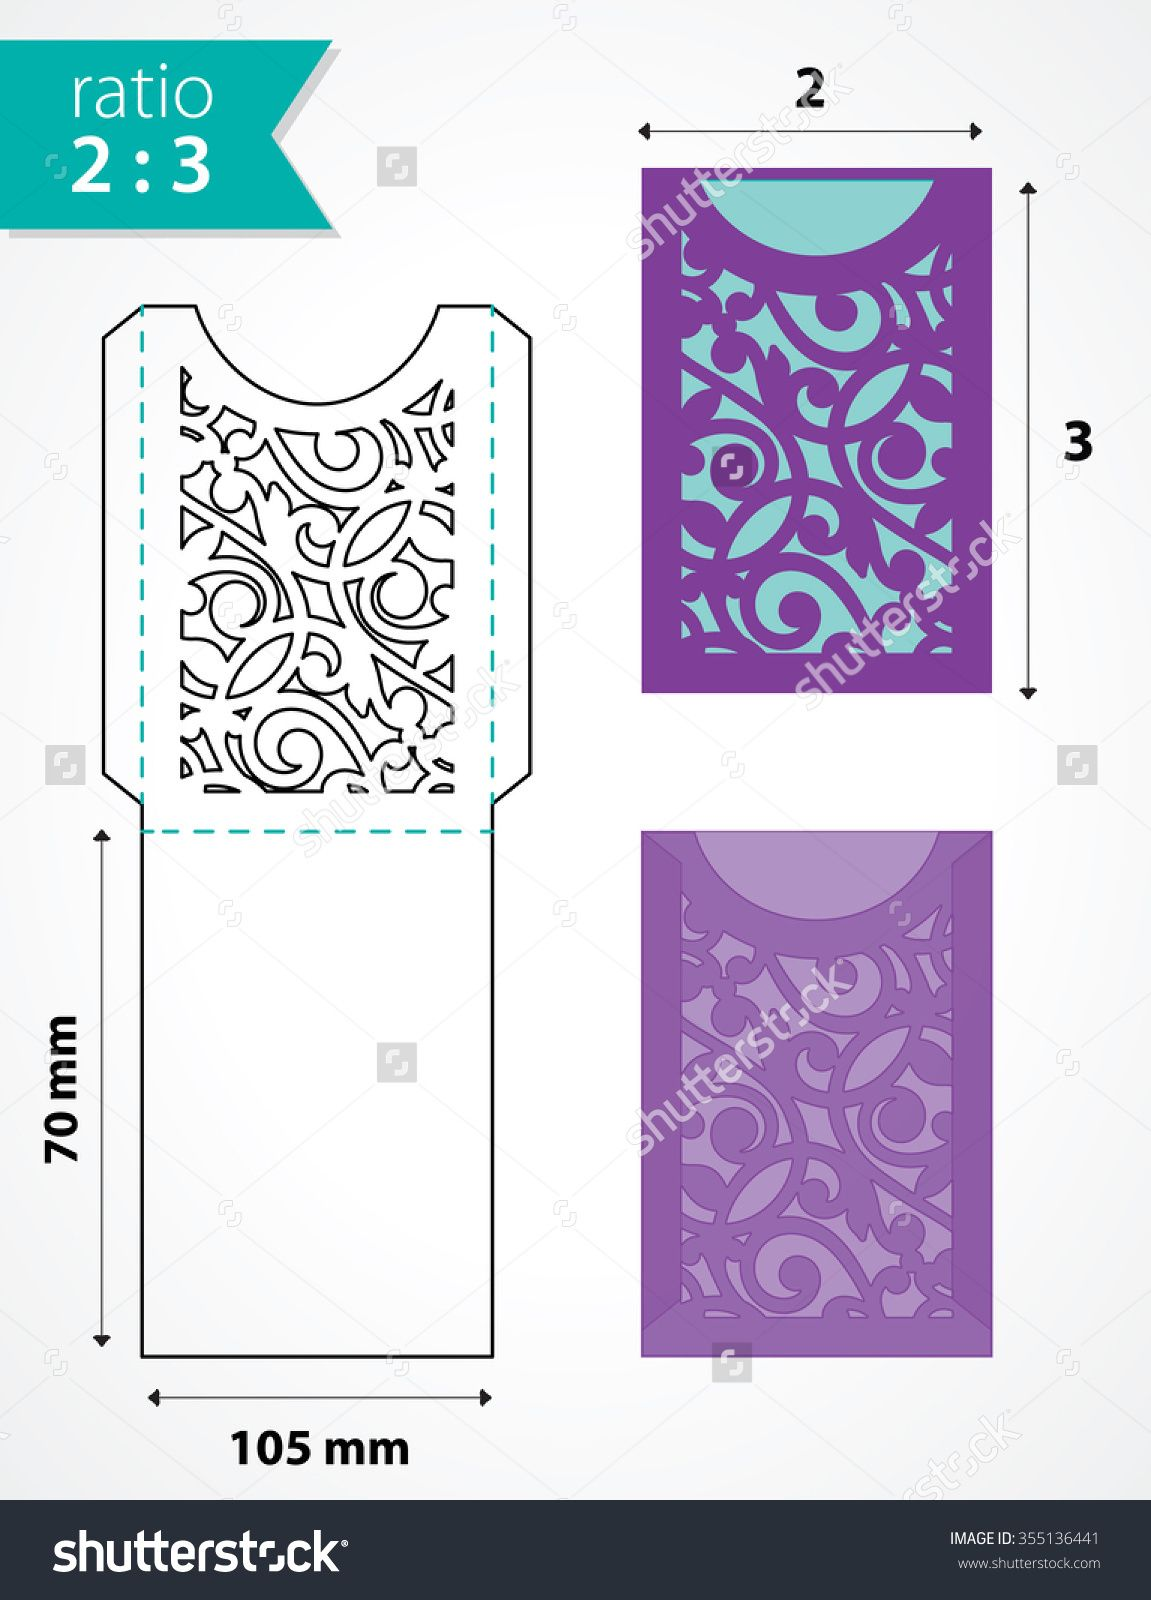 die cut pocket envelope template with cutout pattern